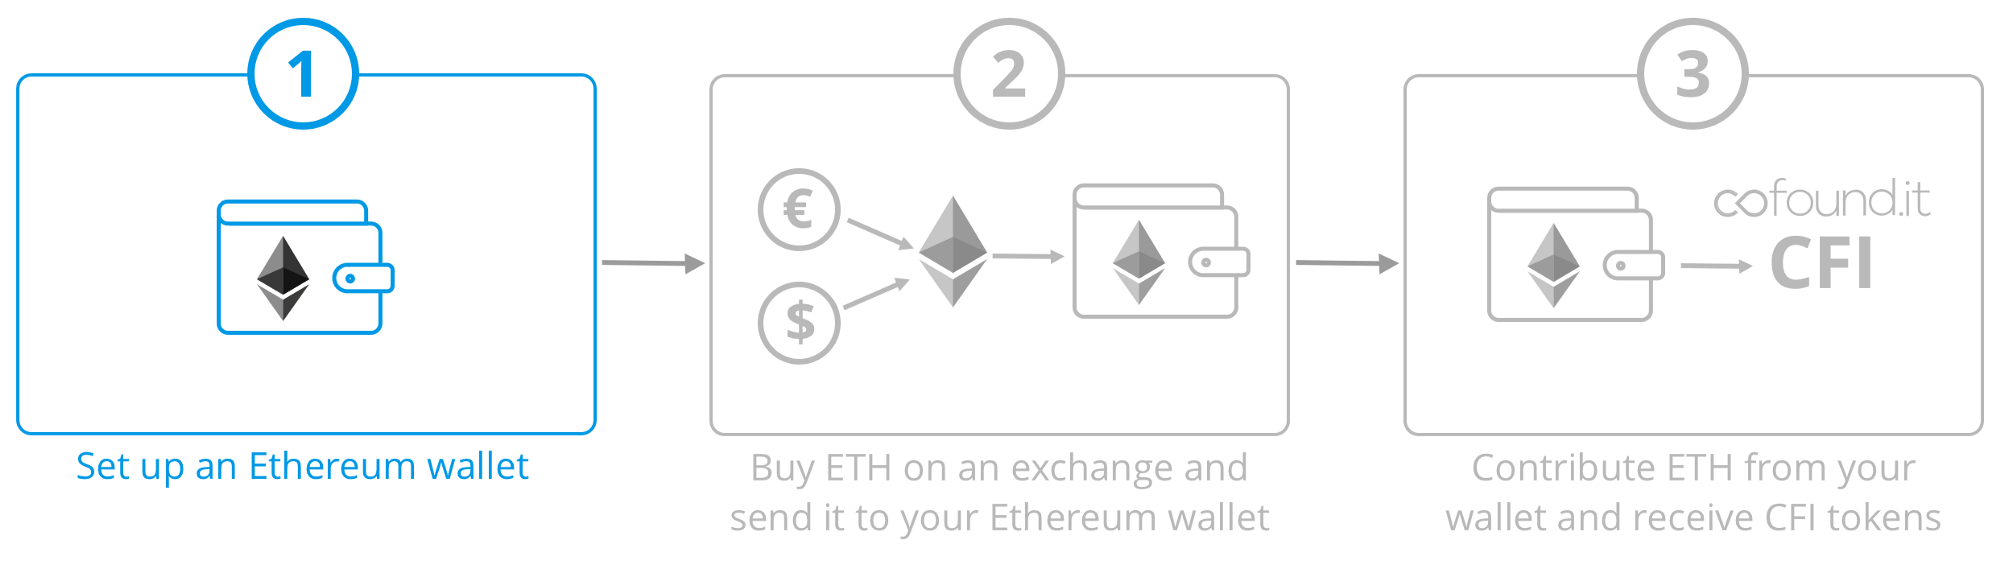 Cofound supporter guide step 1 set up an ethereum wallet on cofound supporter guide step 1 set up an ethereum wallet on myetherwallet ccuart Gallery